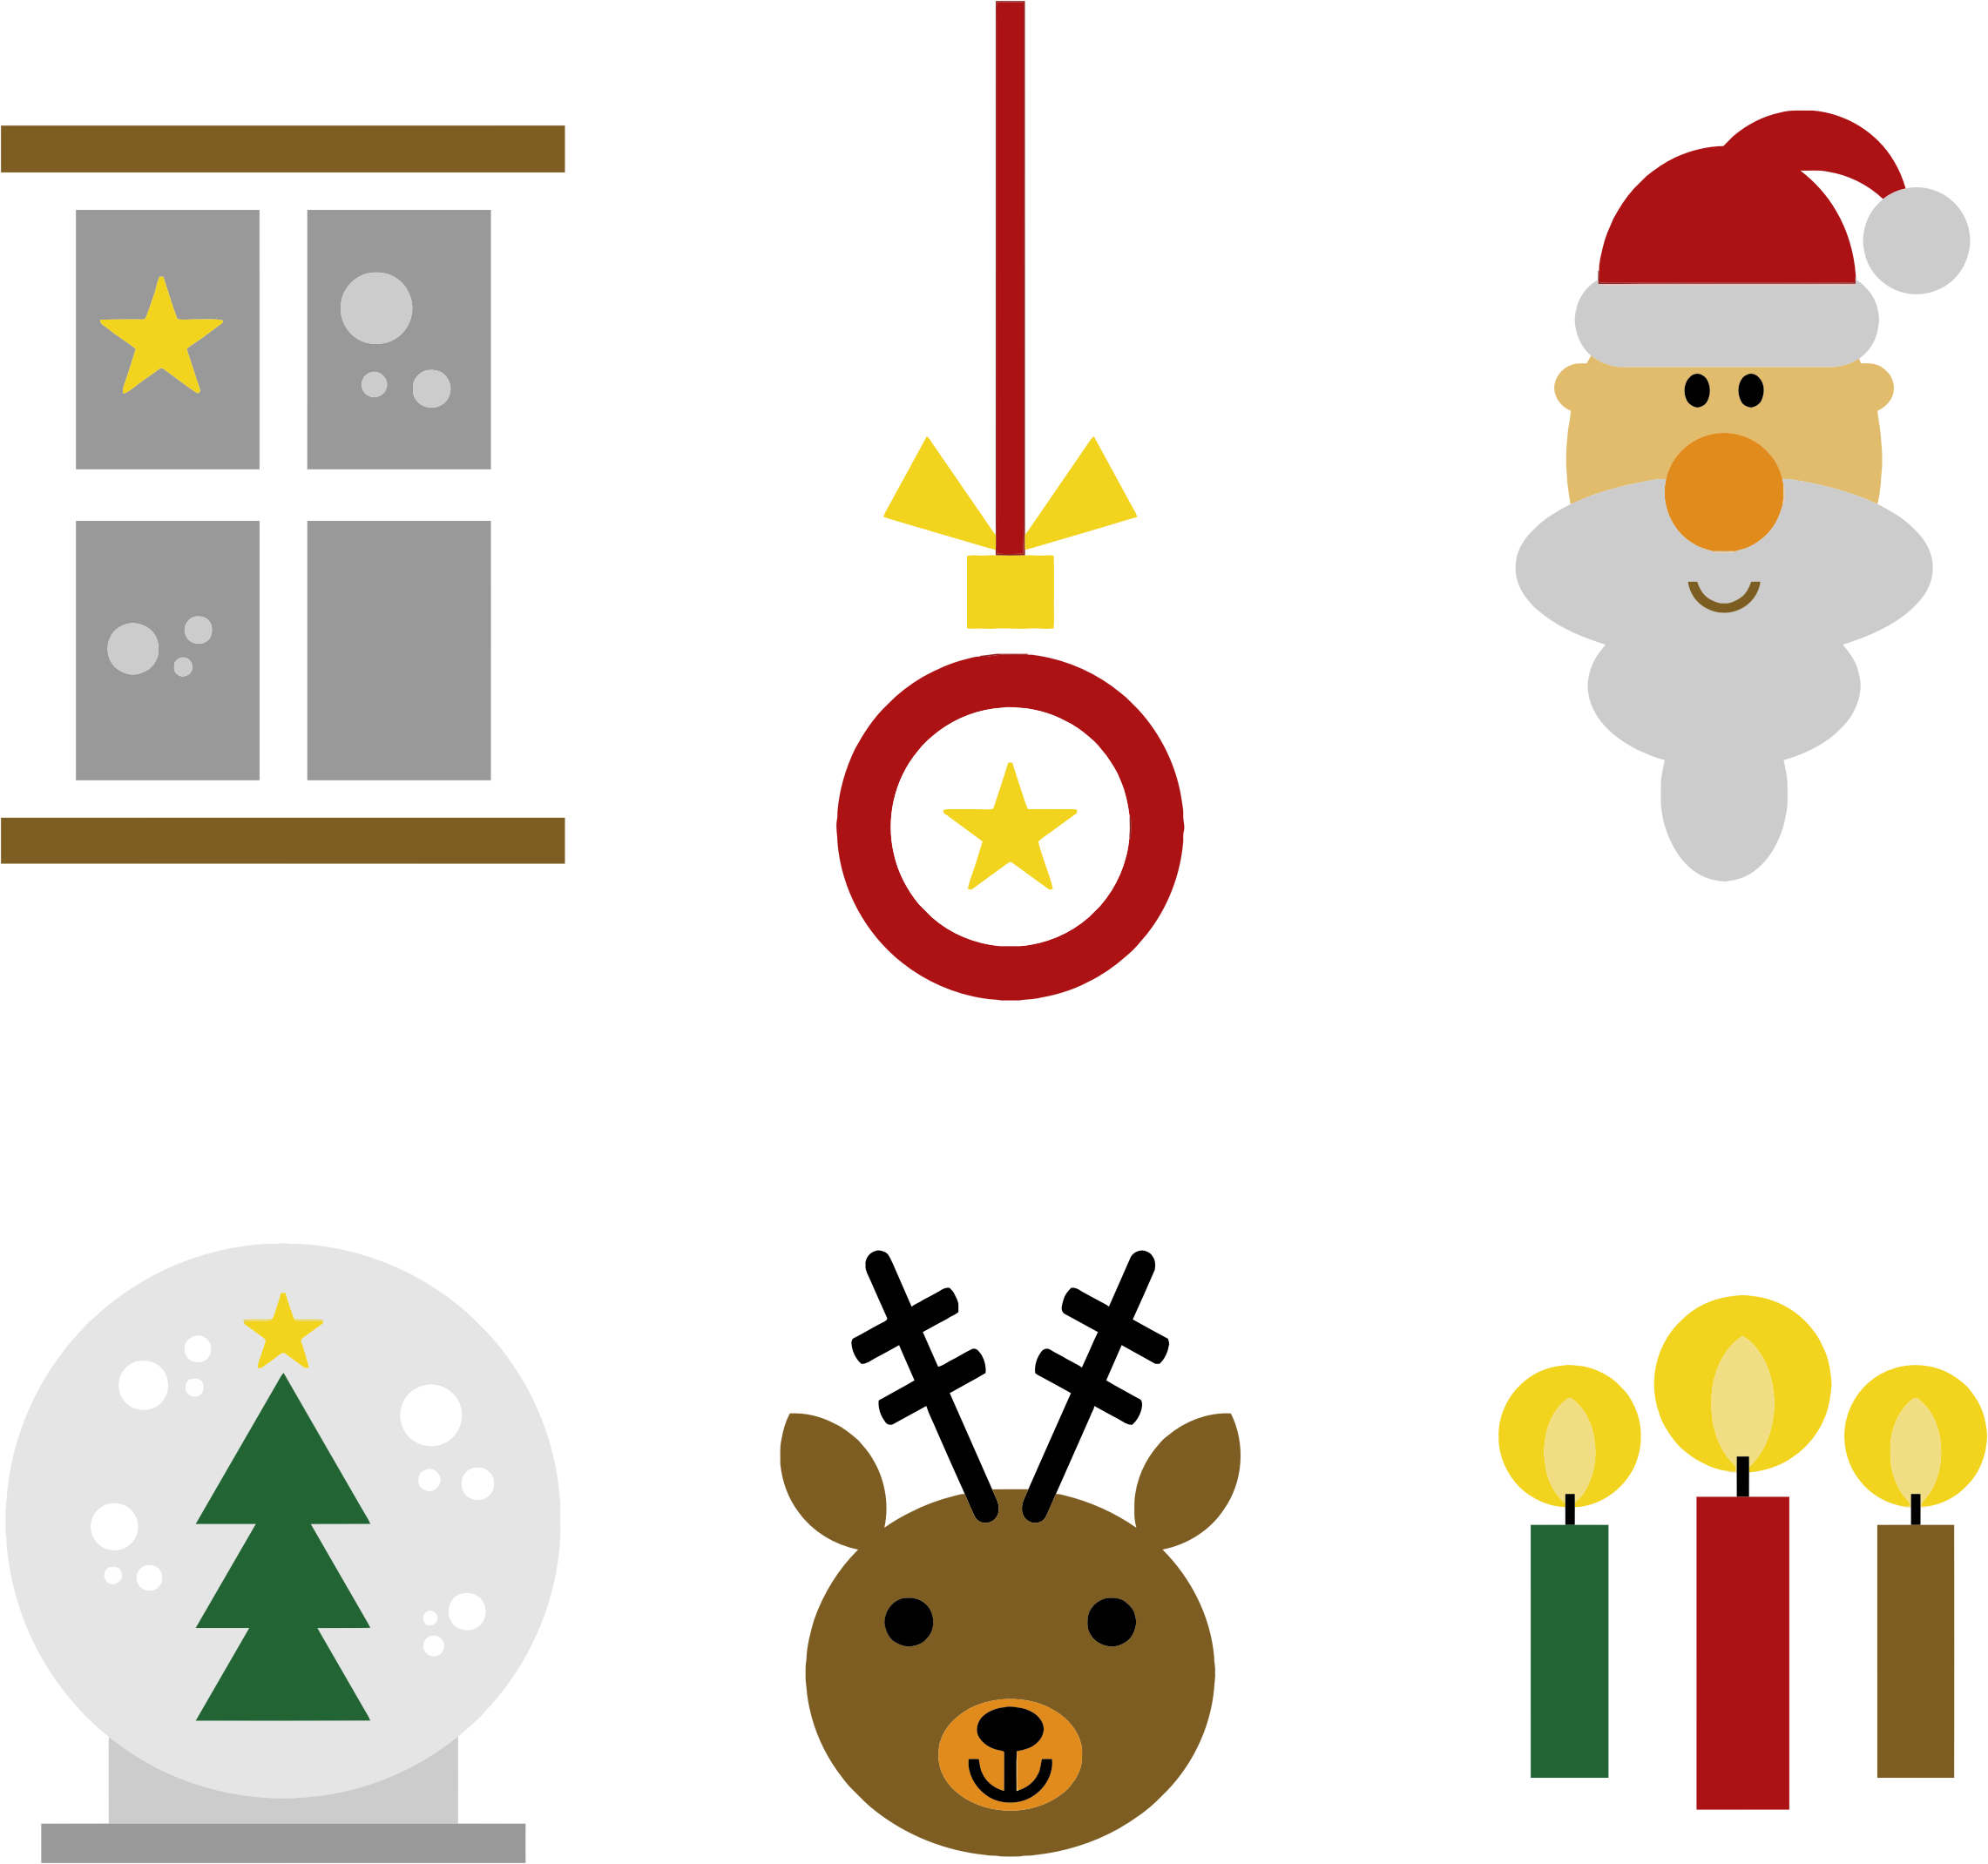 Christmas icons clipart royalty free stock Clipart - Festive Christmas Icons royalty free stock